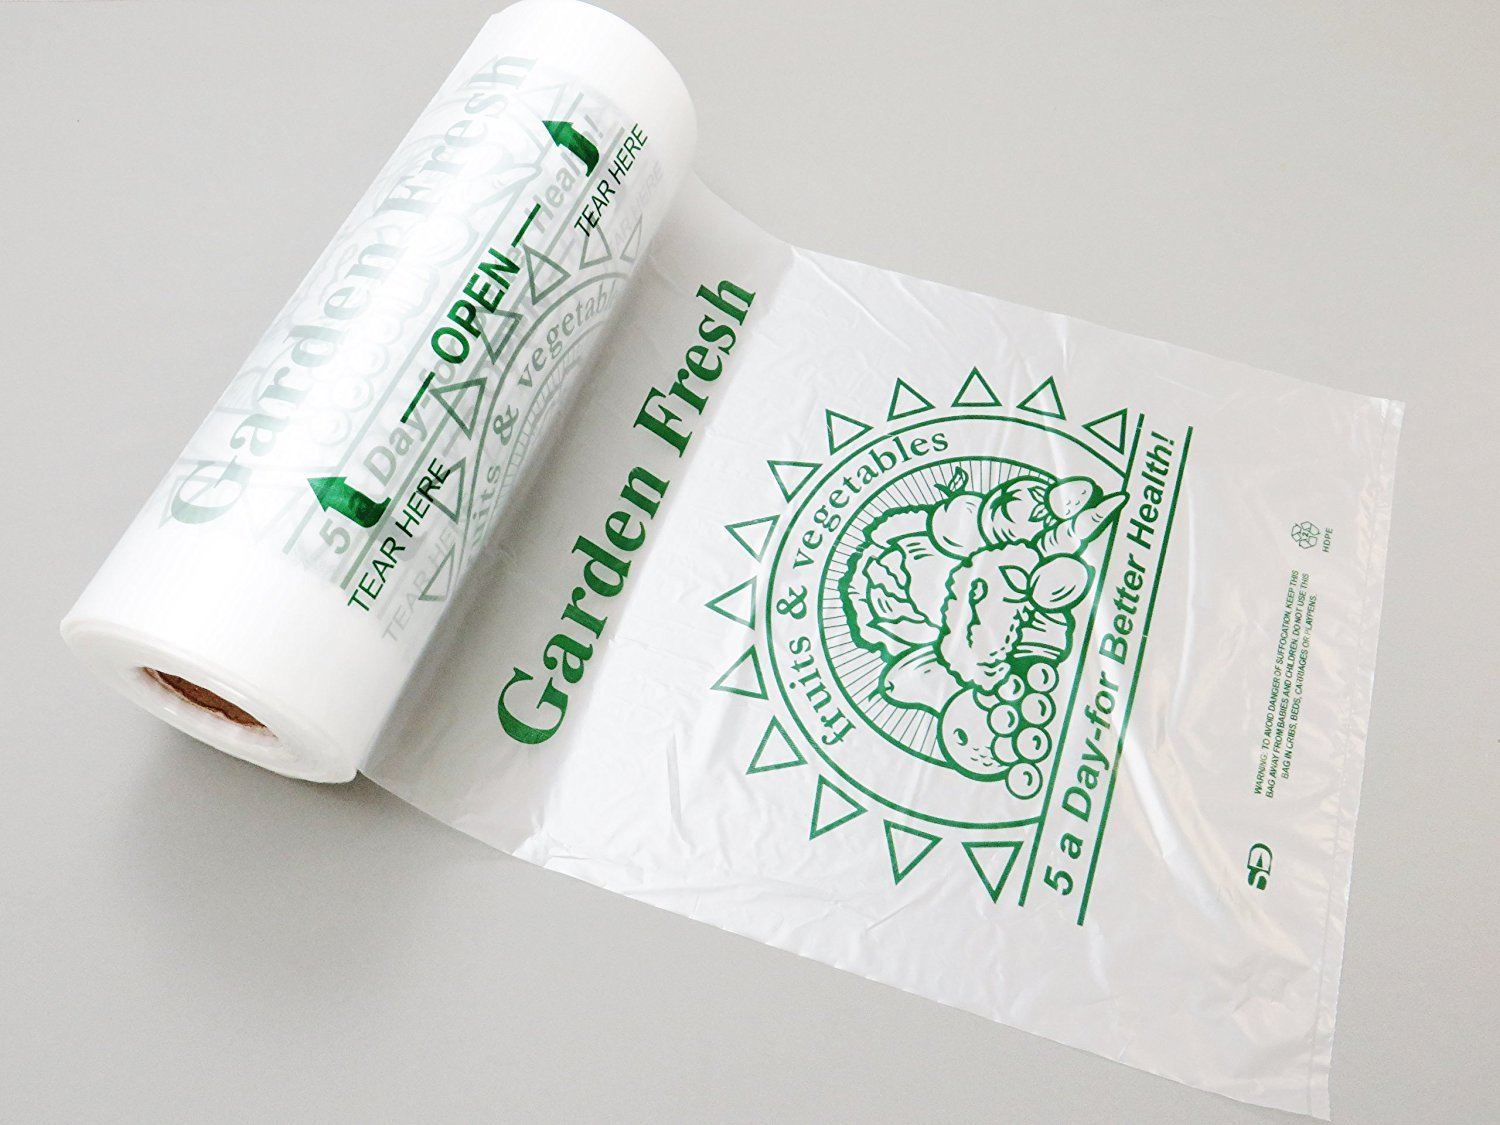 Royal プラスチック袋 プリント入り 高密度ポリエチレン パン 食料品 5ADay 10x15 B06W55X13F  5ADay 10x15